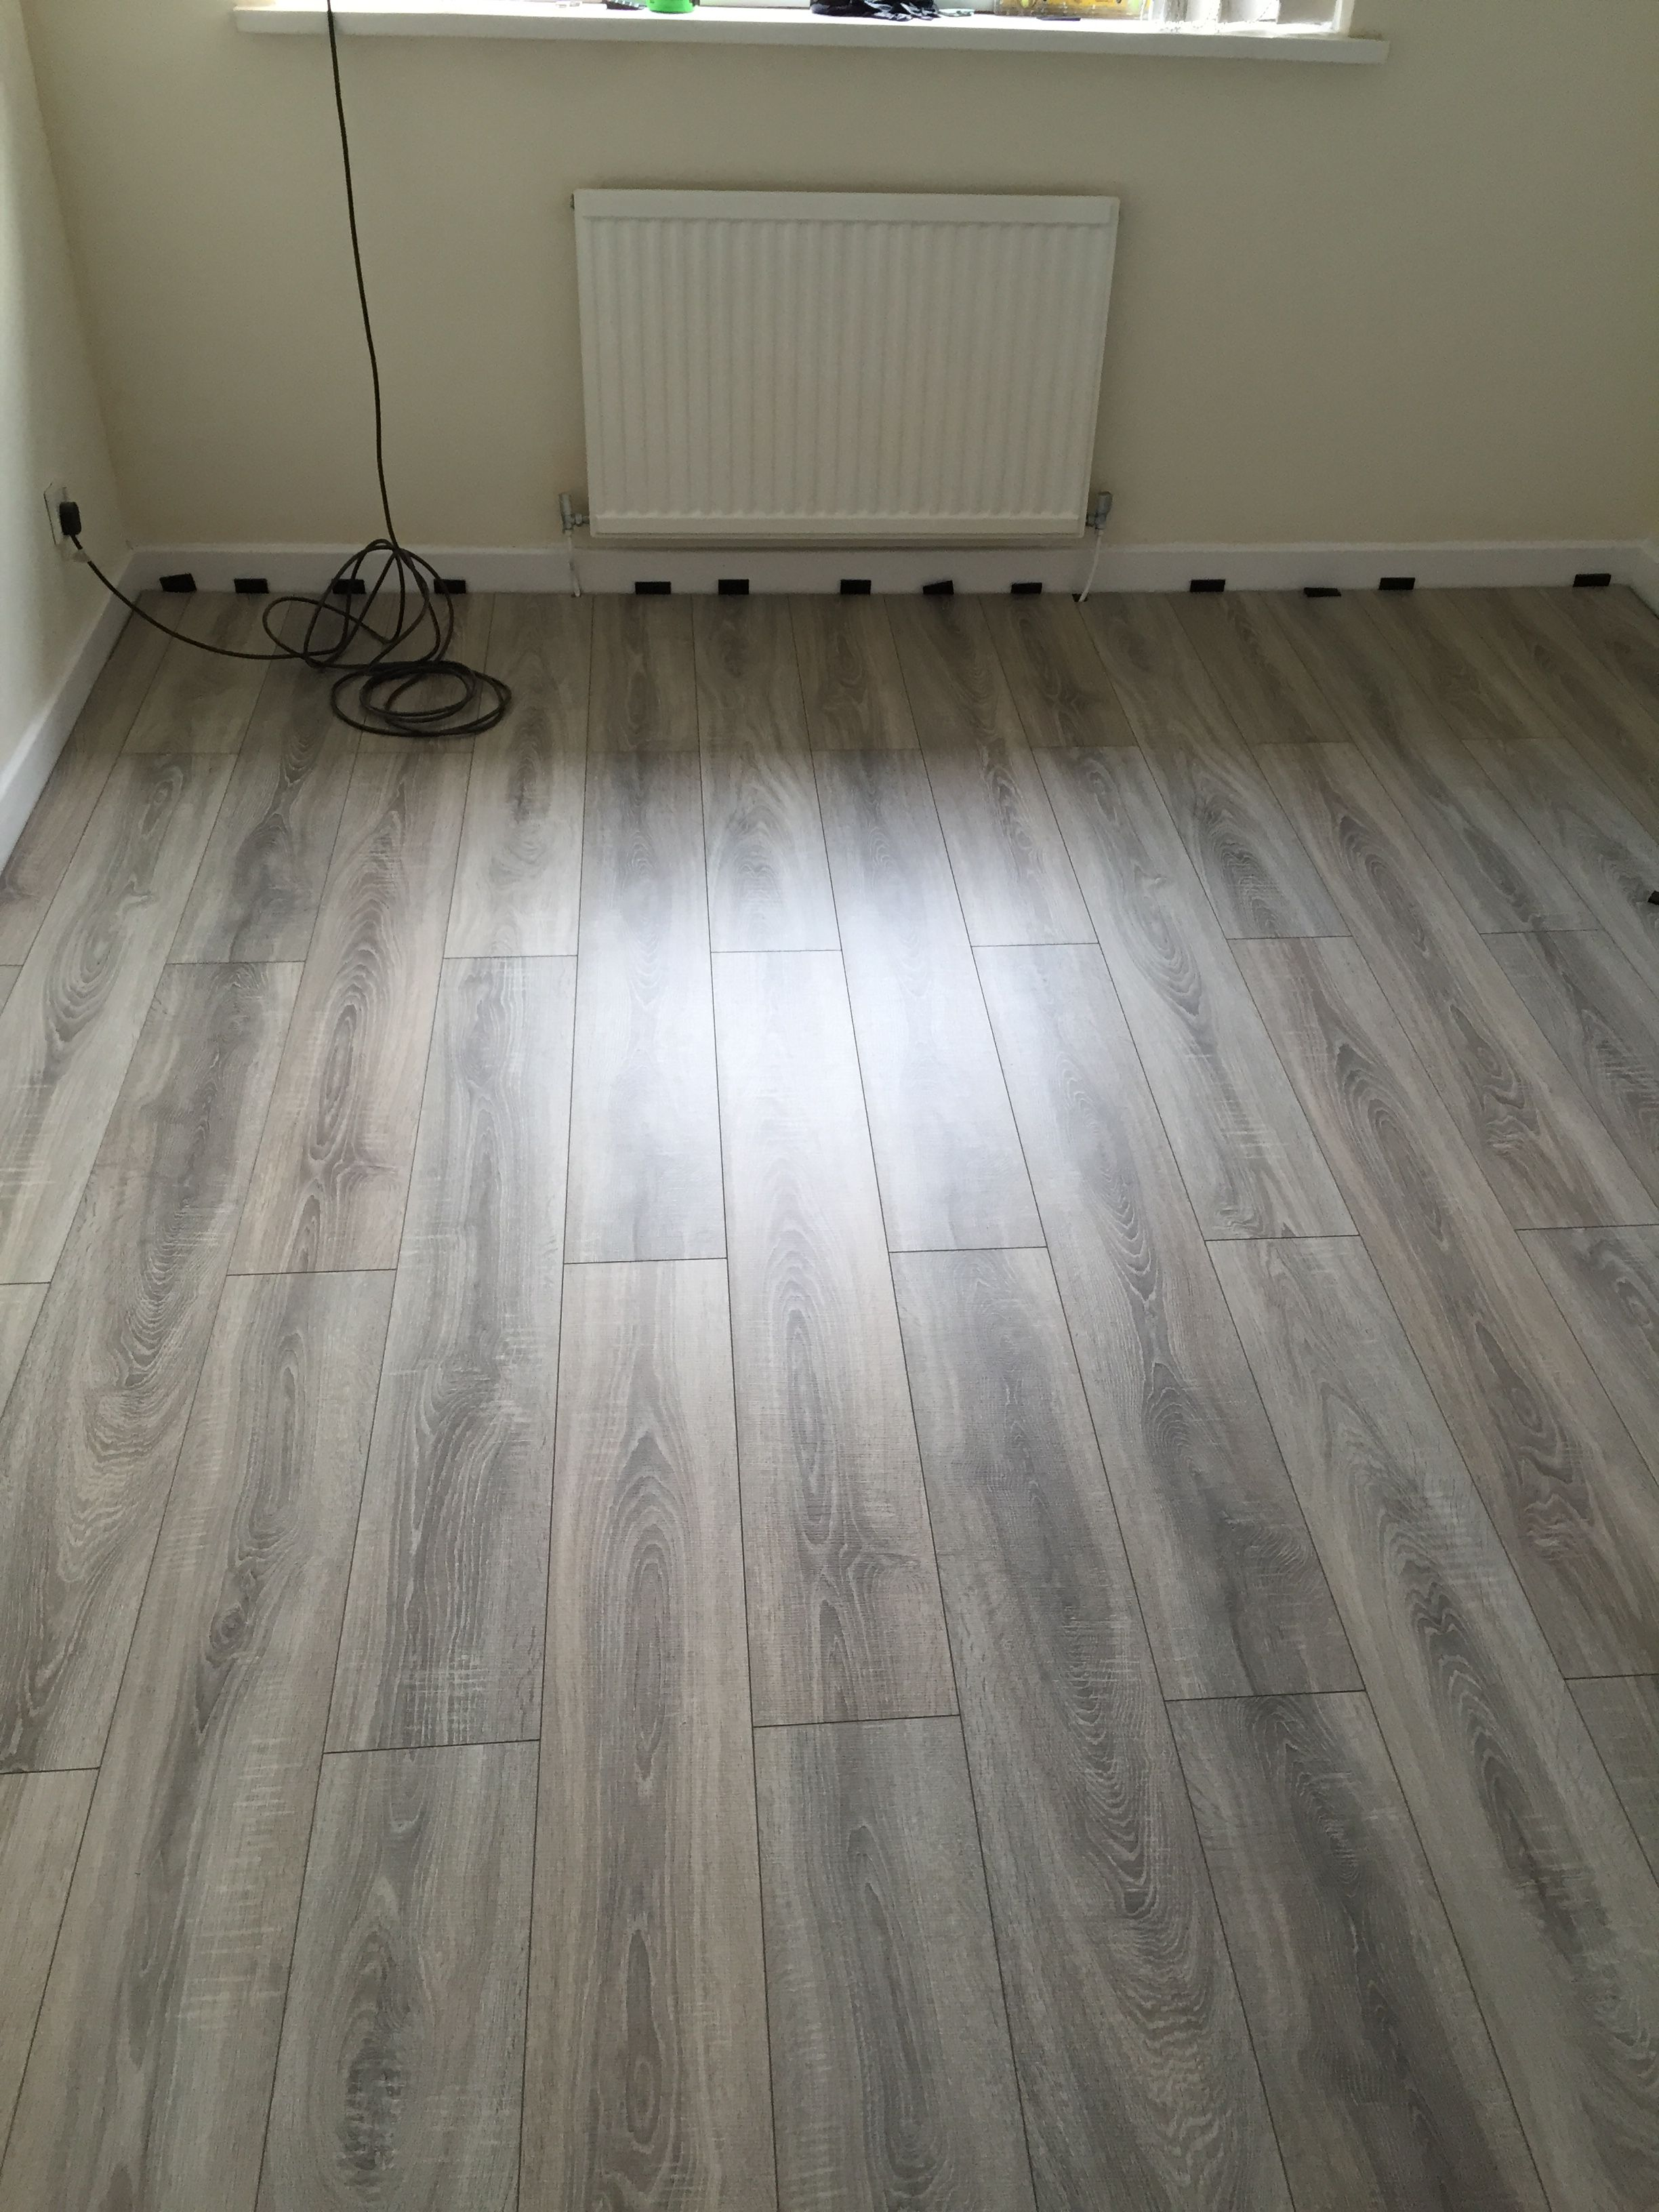 Sydney Grey Oak Is A Beautiful Stained Smoked Effect Oak 7mm Laminate Flooring With Rich Smoked Tones It Wi Grey Oak Oak Laminate Flooring Laminate Flooring